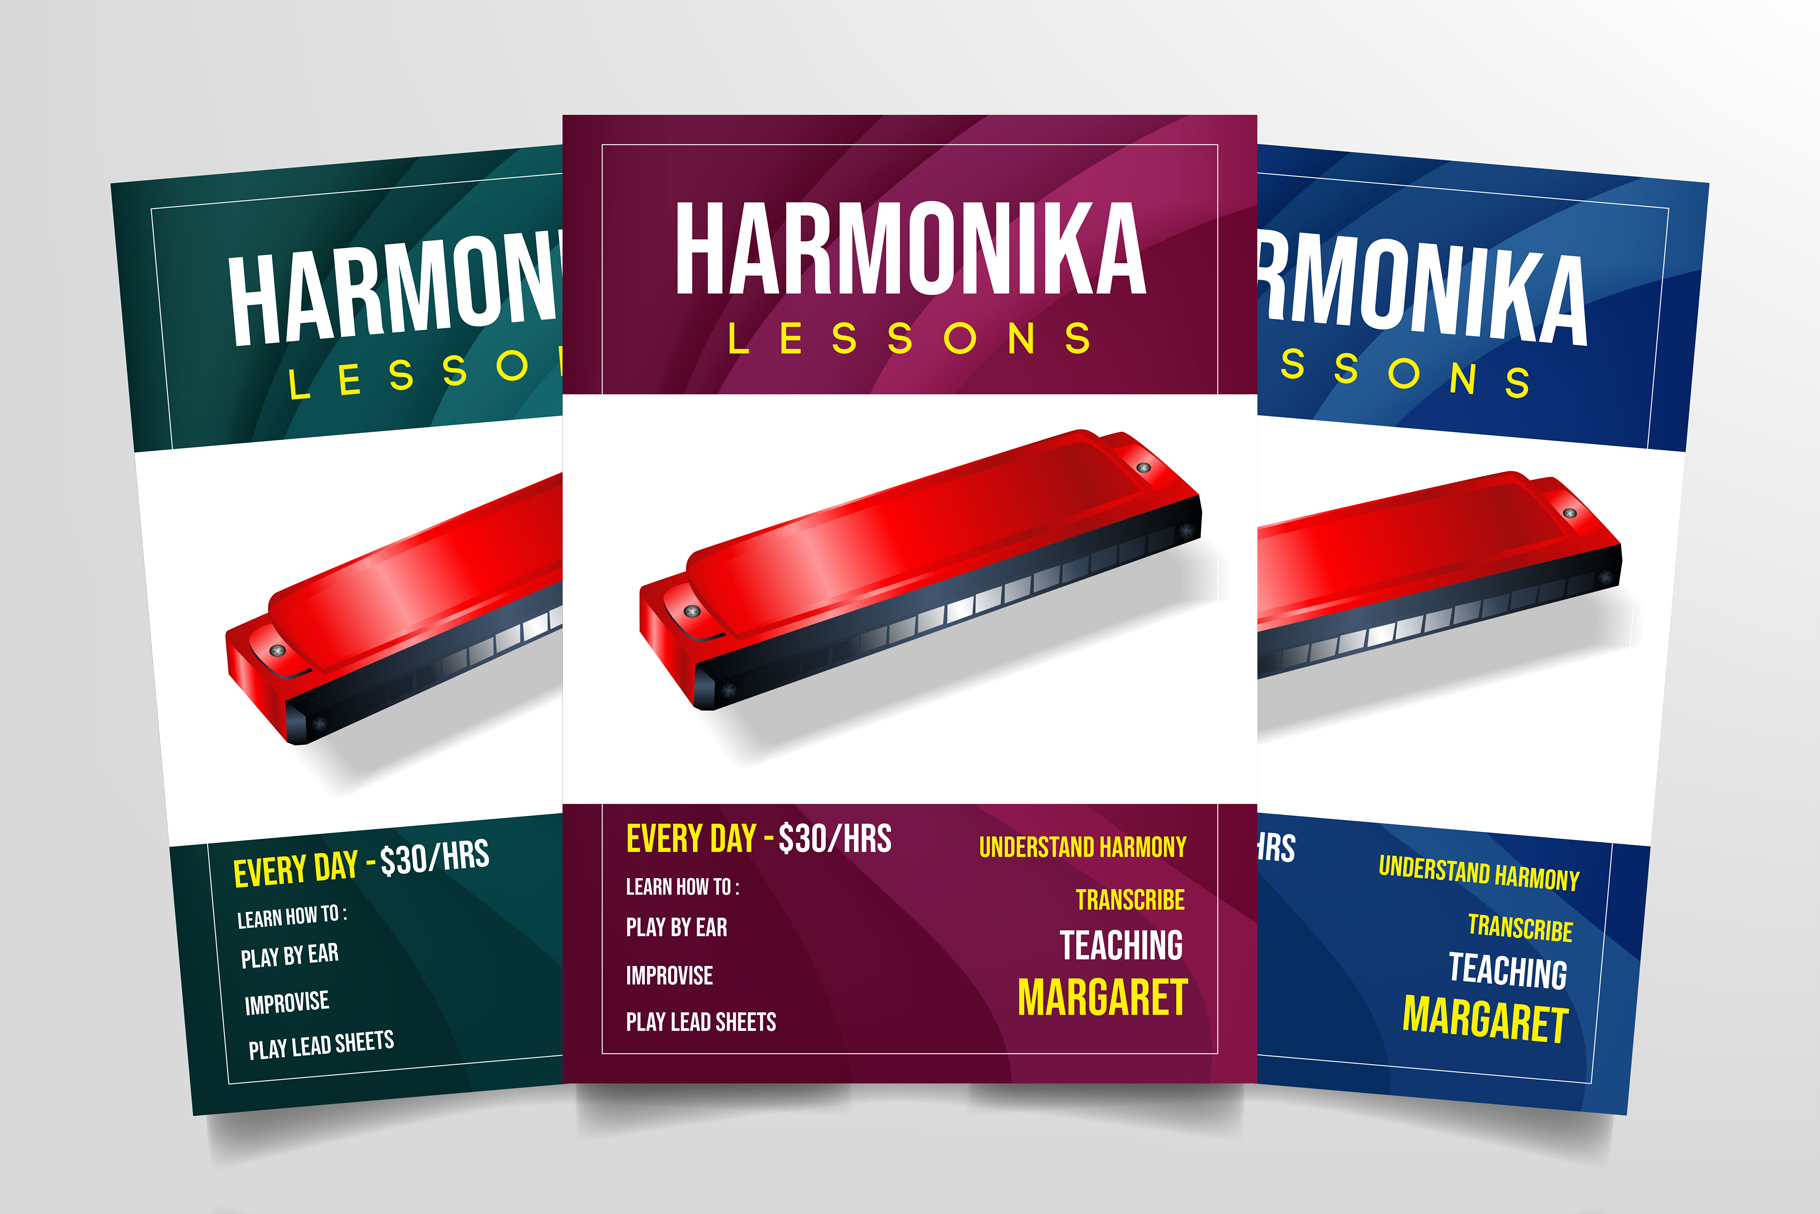 Harmonica Lessons Flyer Template example image 1